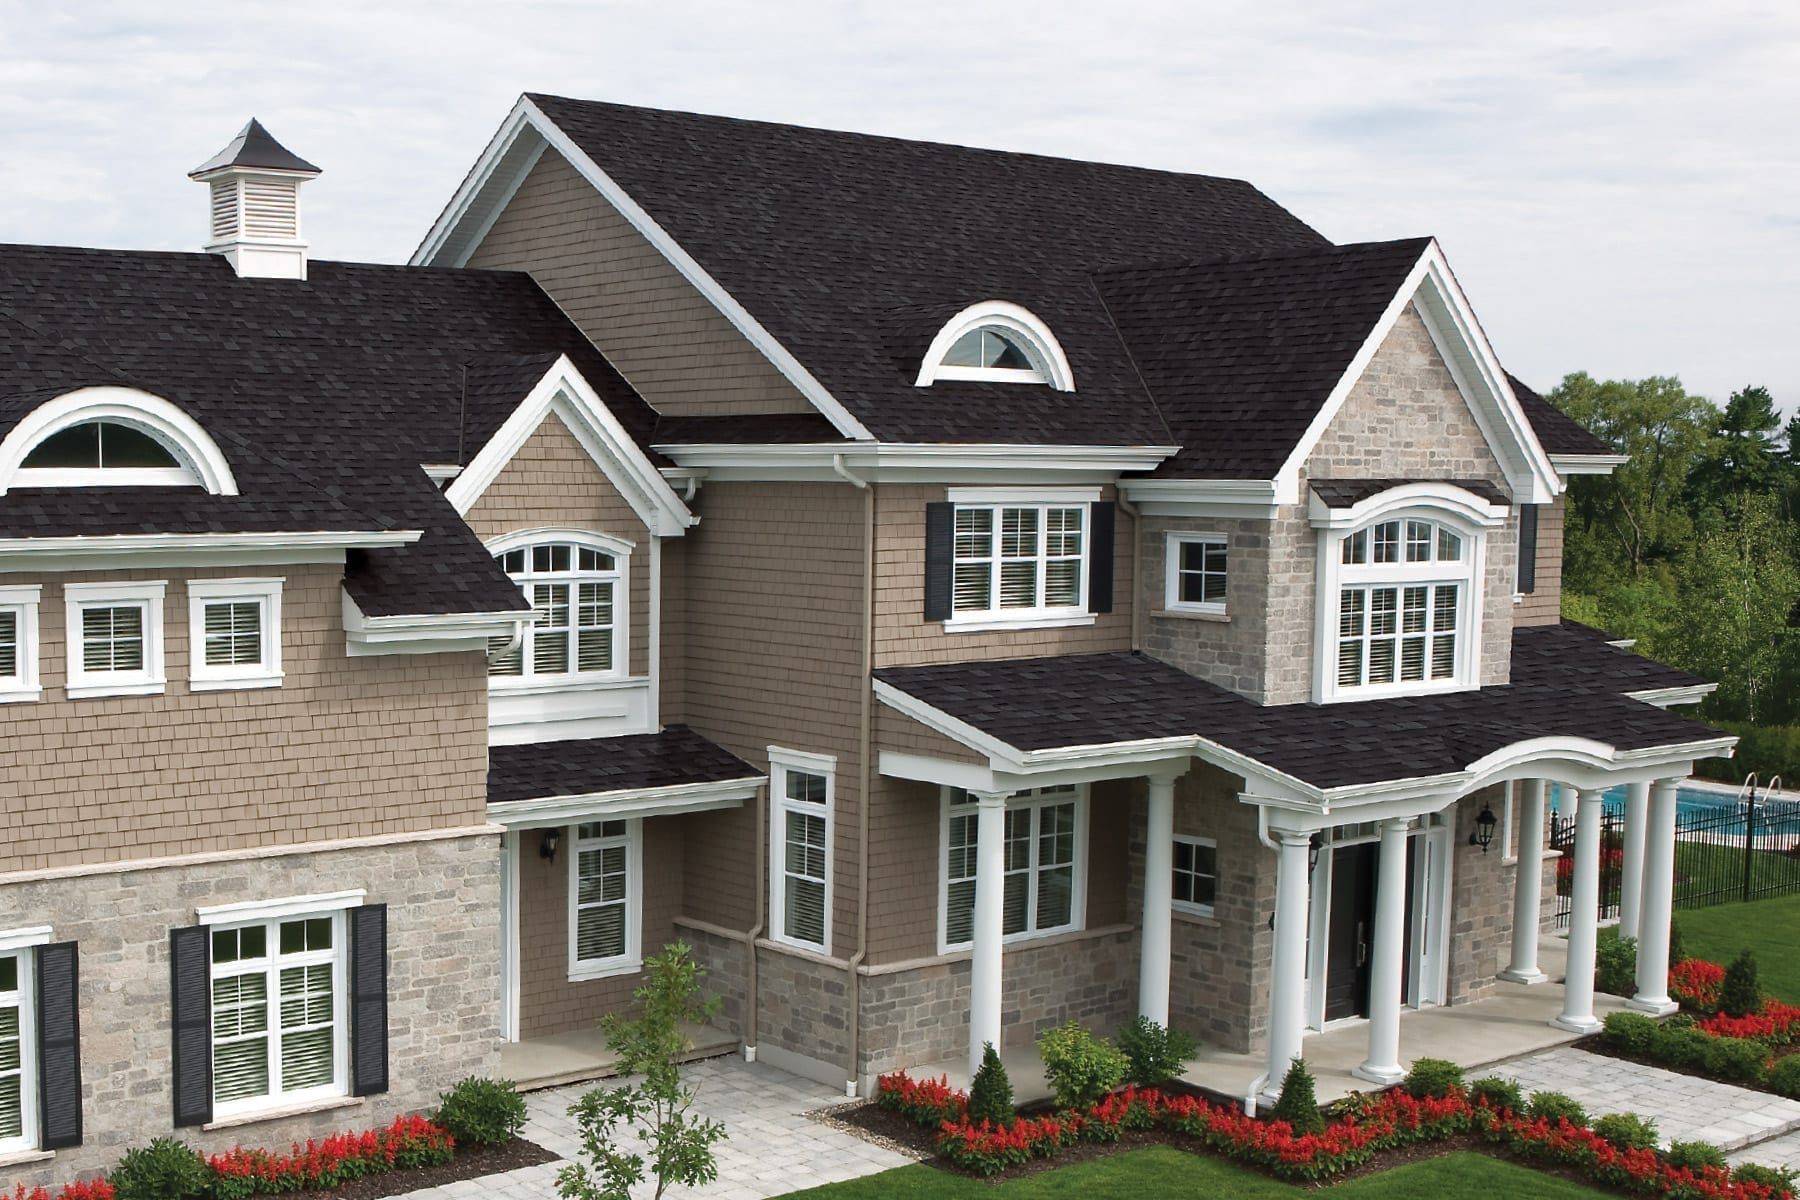 JDM Roofing - Ottawa Roofing